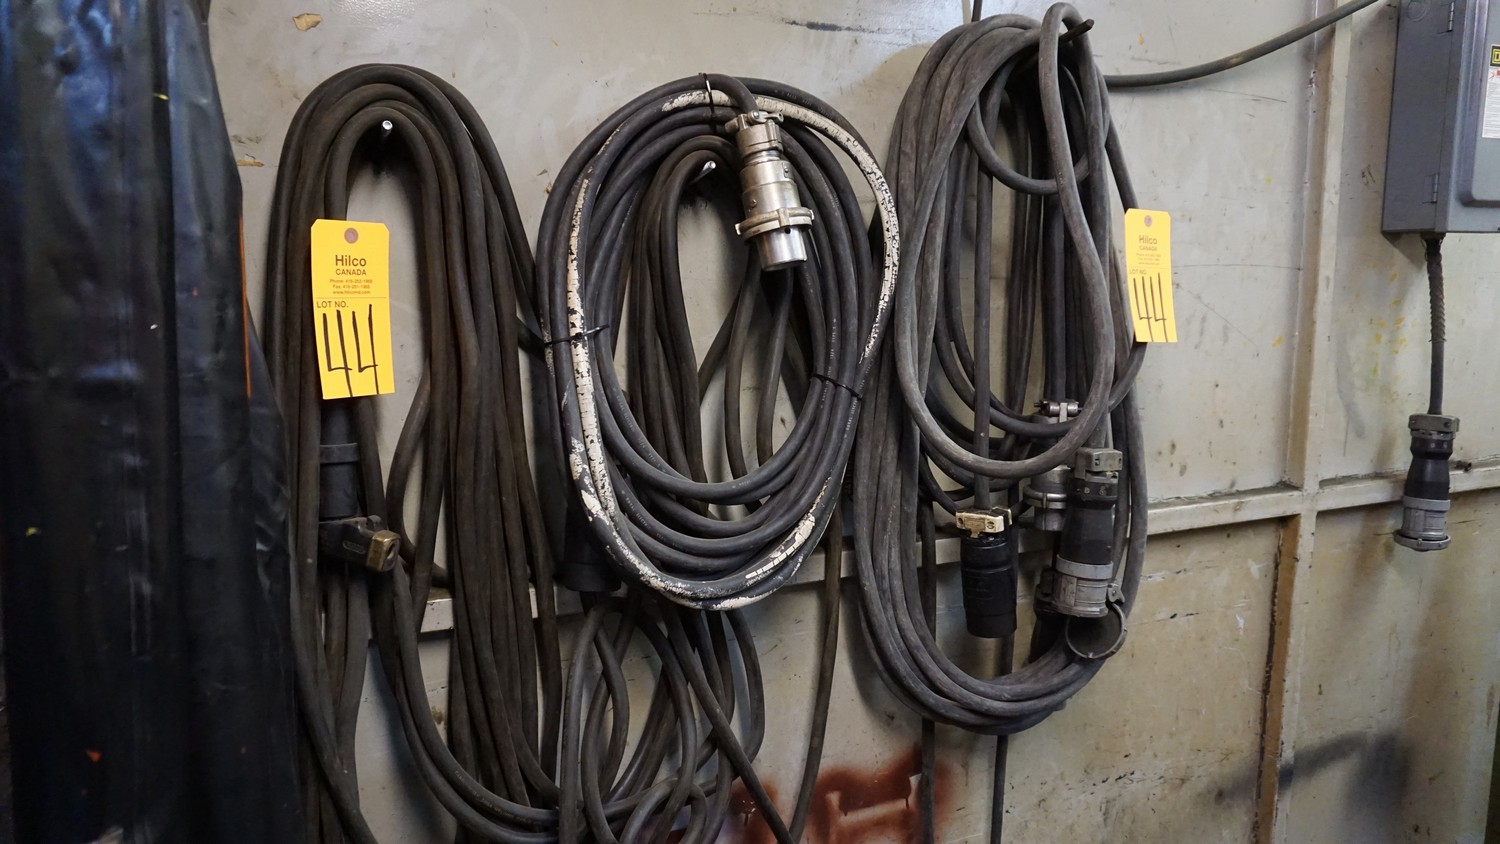 Lot 44 - Asst. Welding Wire with Extension Cable, Welding Table, Electrodes